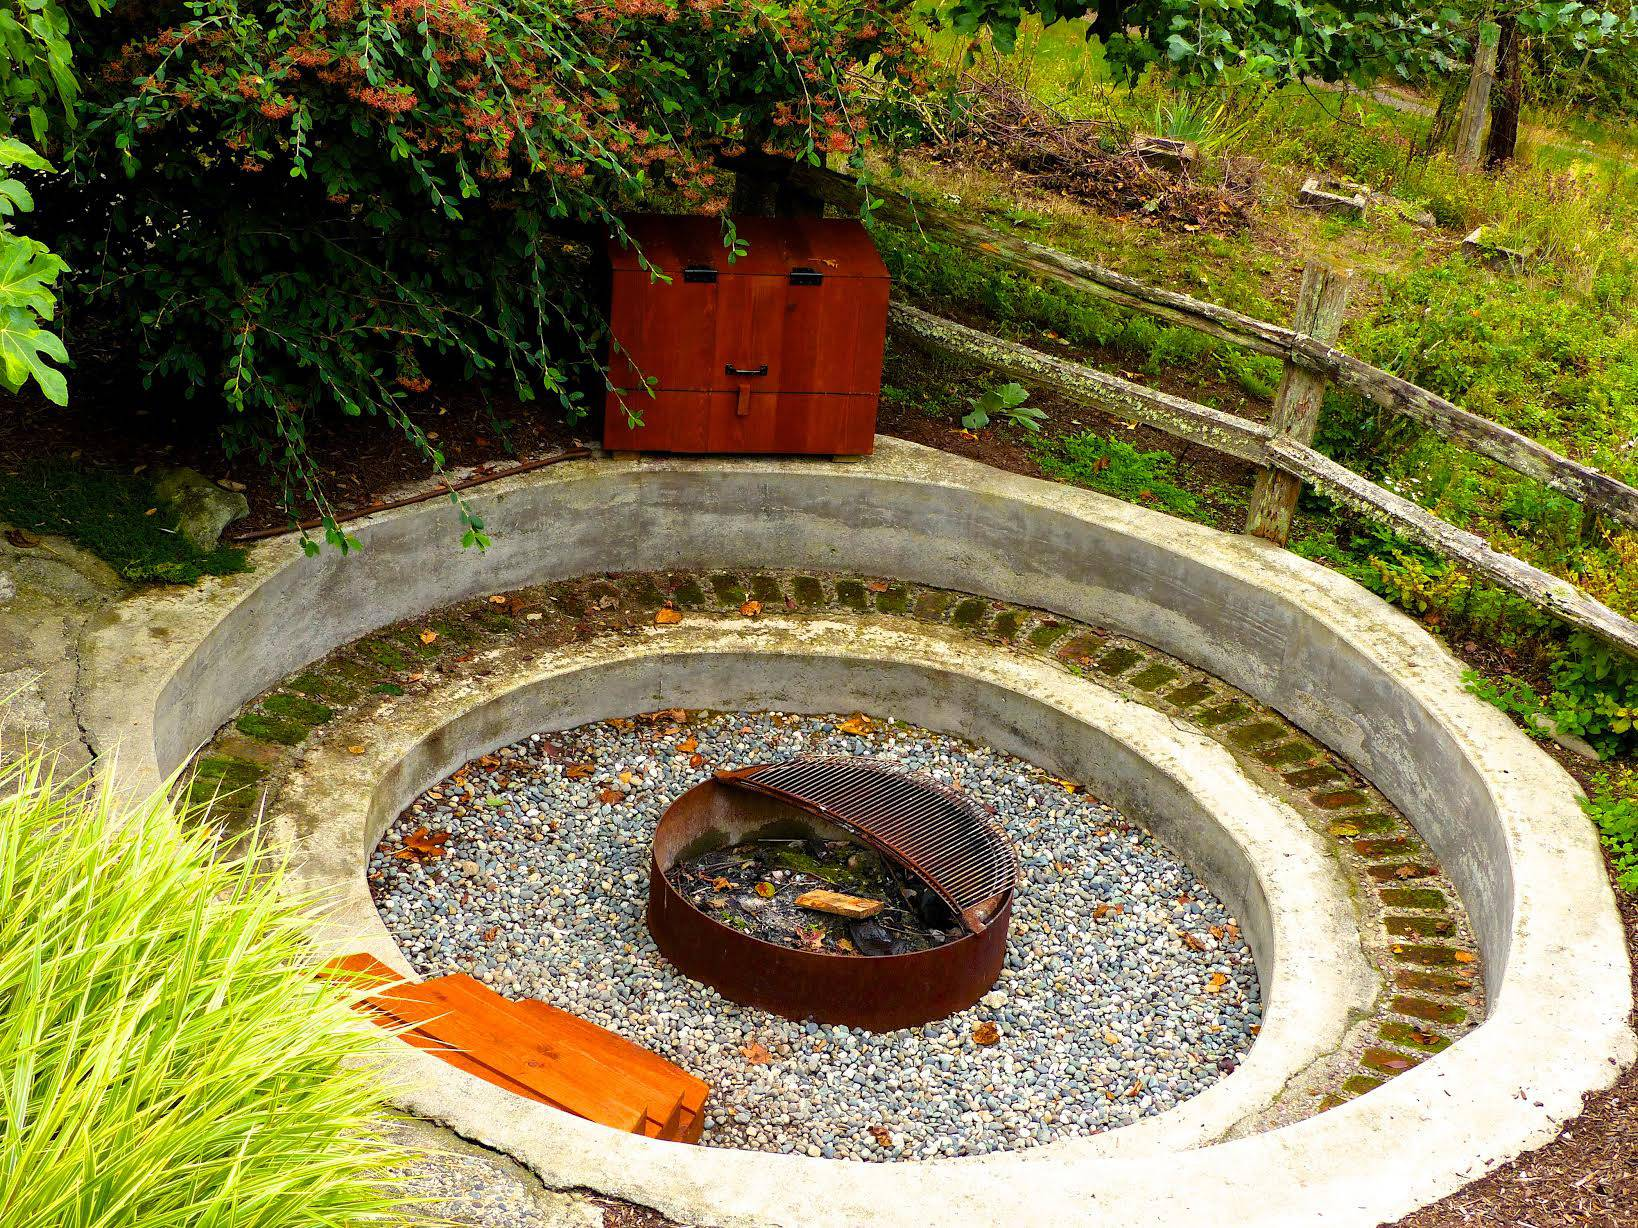 woodburning fire pits are common in suburban backyards but more and more people - Fire Rings